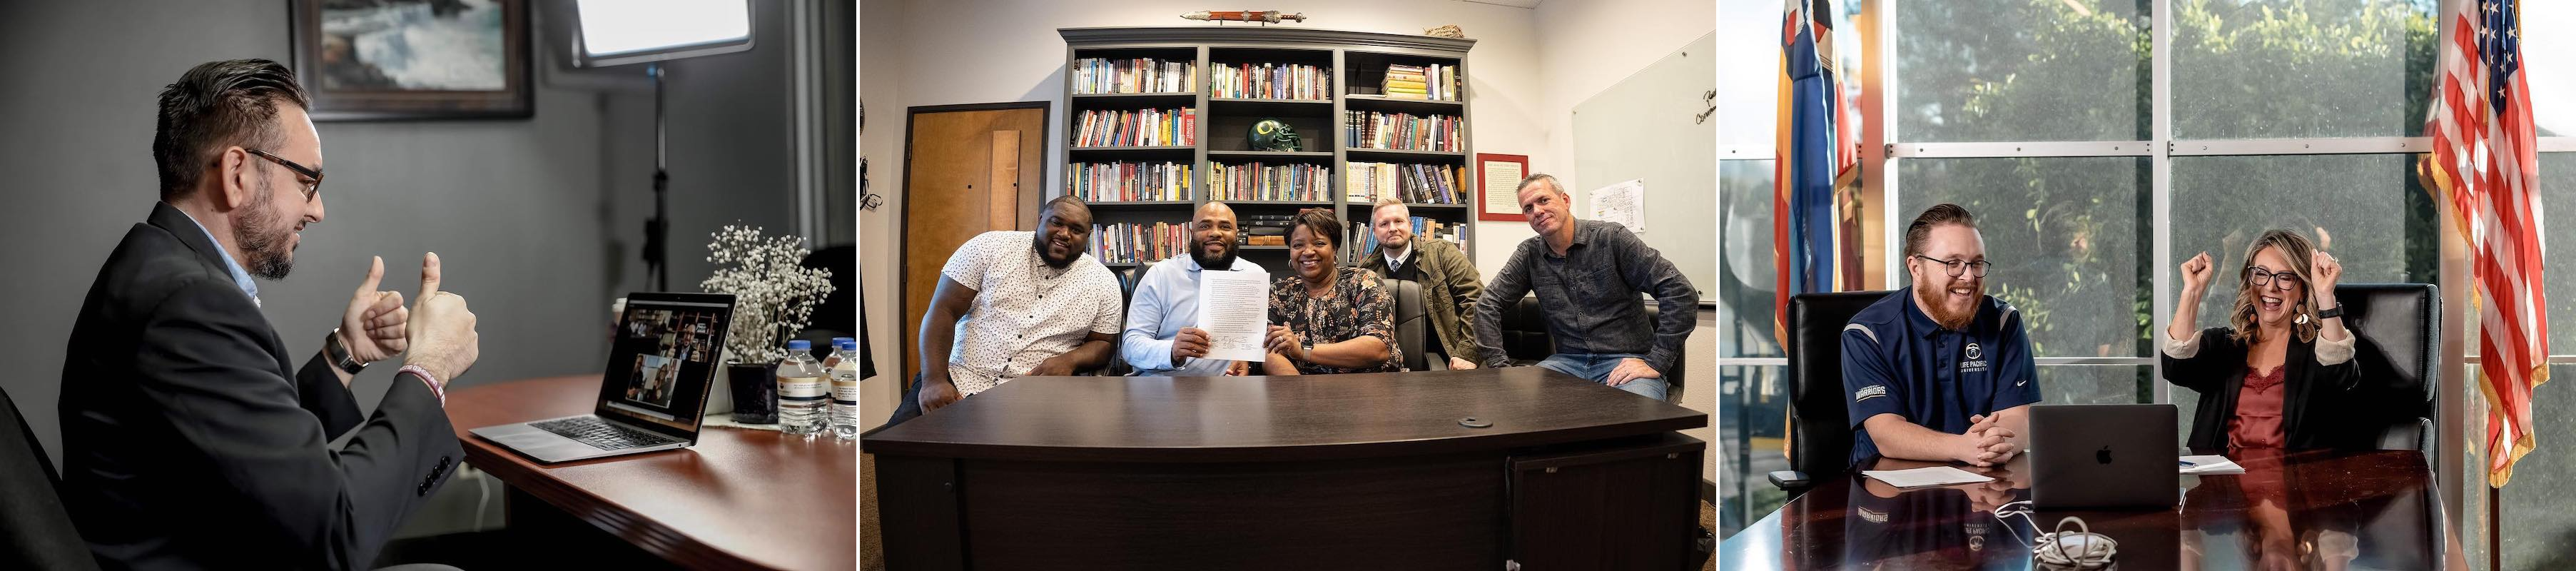 Photos from the virtual signing event with Pastors Keith and Coco Jenkins at East Hill Church in Gresham, Oregon.